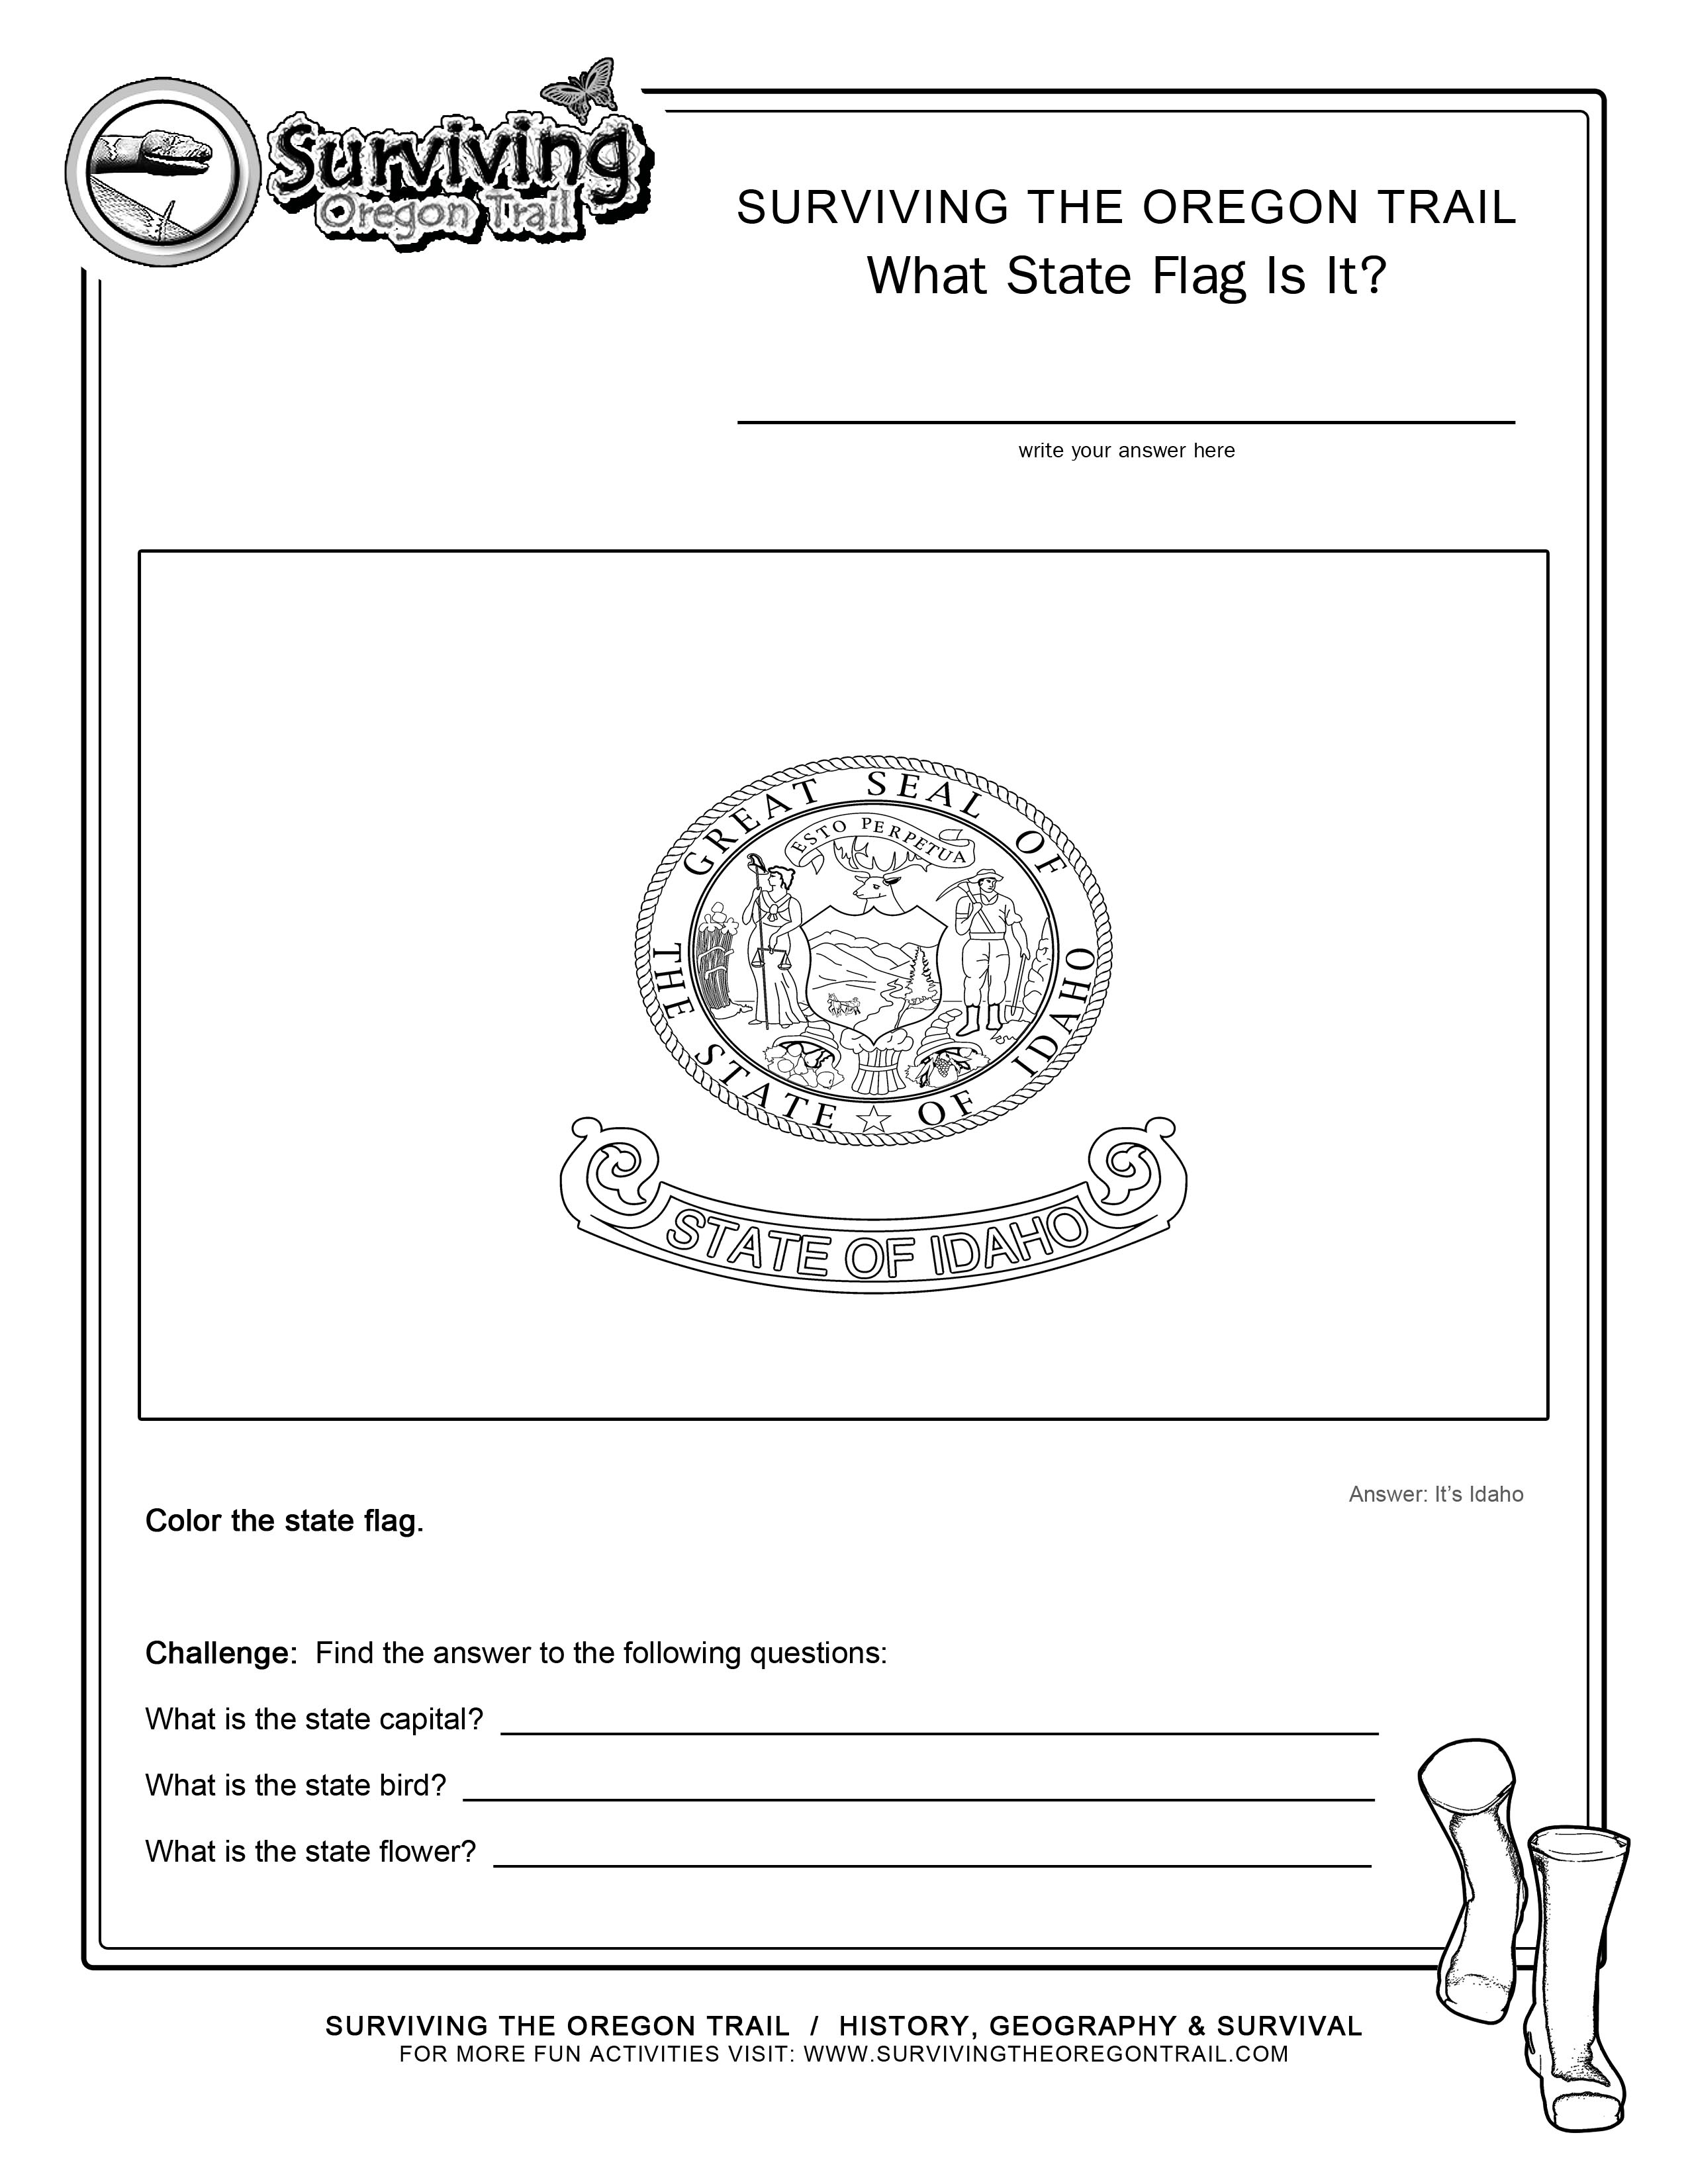 Coloring Page State Flag Idaho Printable Worksheet – Surviving The - Free Printable Arkansas History Worksheets